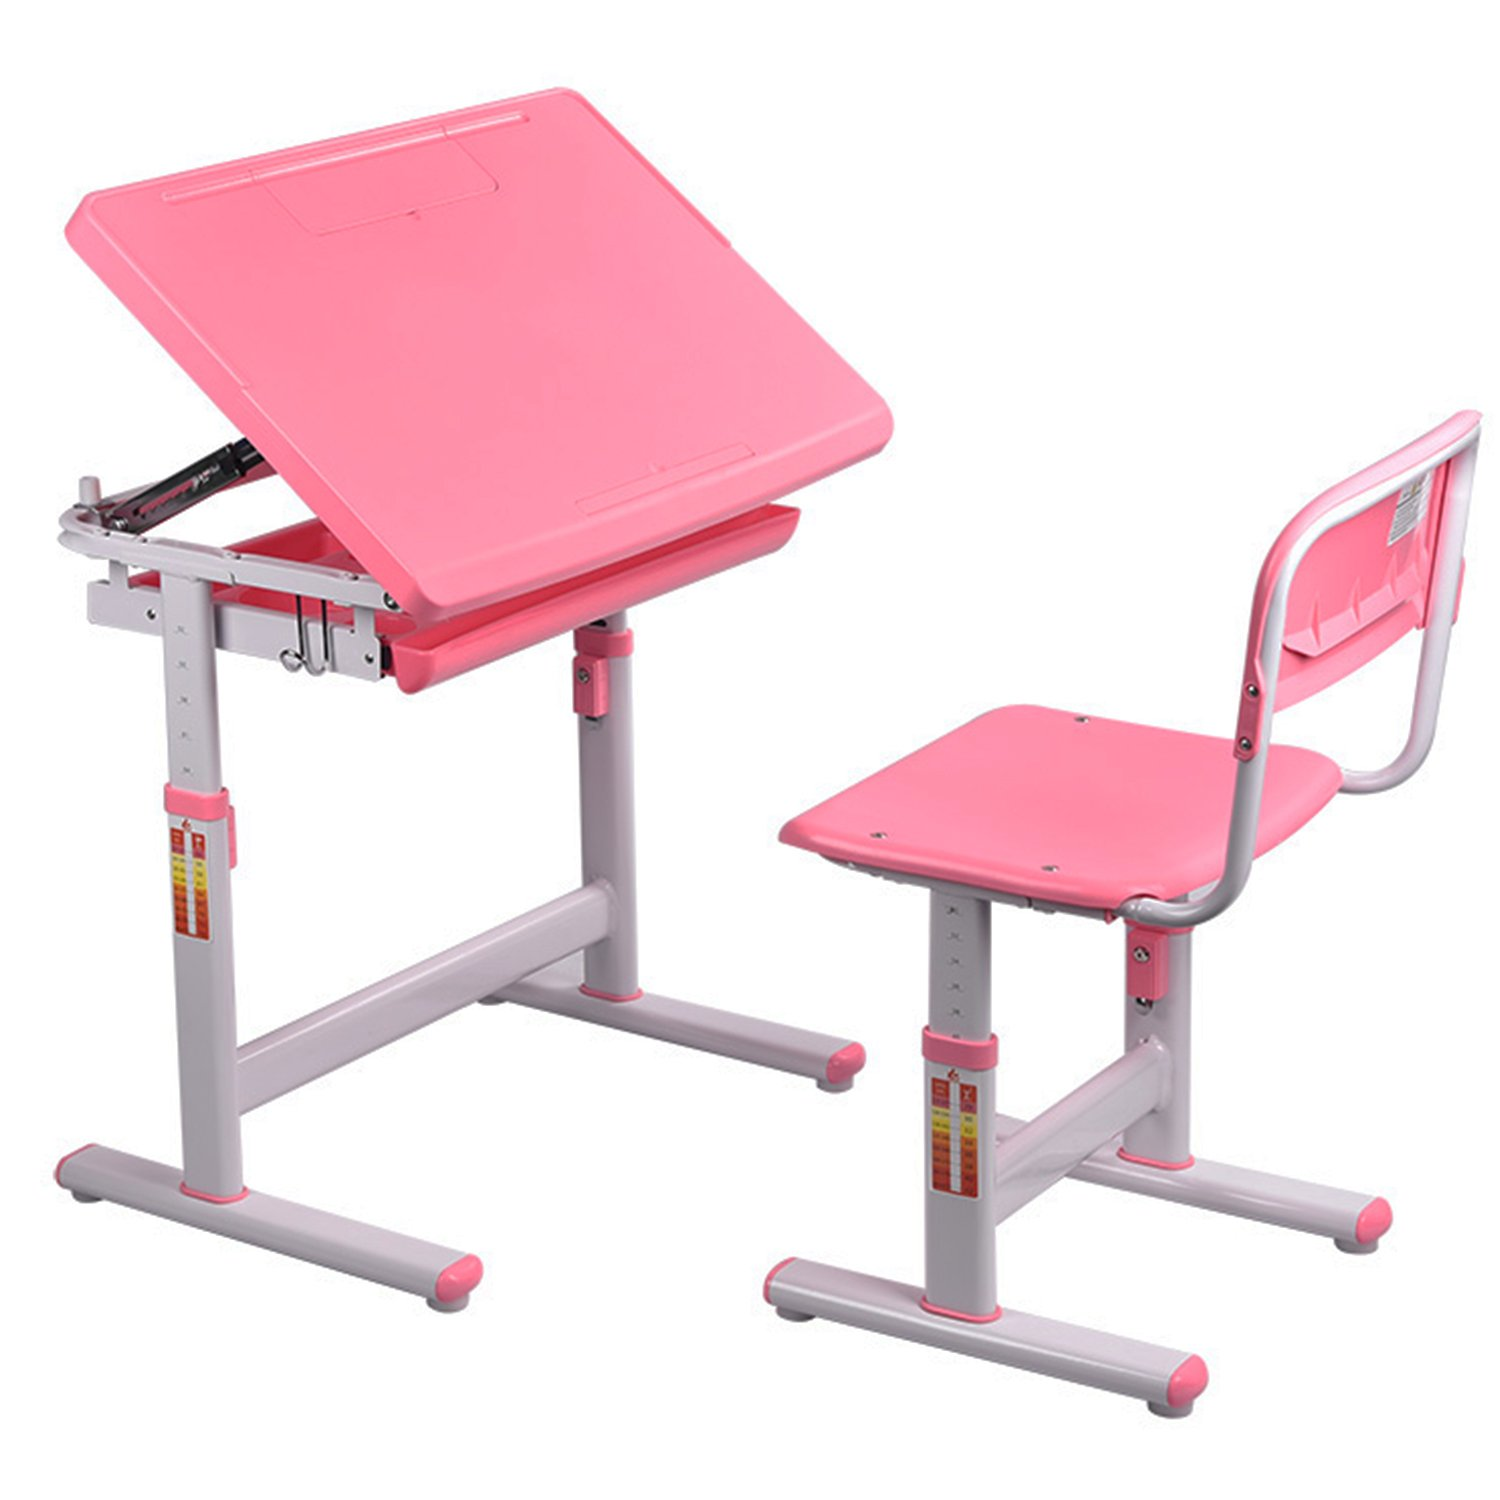 I STUDY Height Adjustable Children's Desk and Chair Set For Kids Work Station, Study Area (Pink)